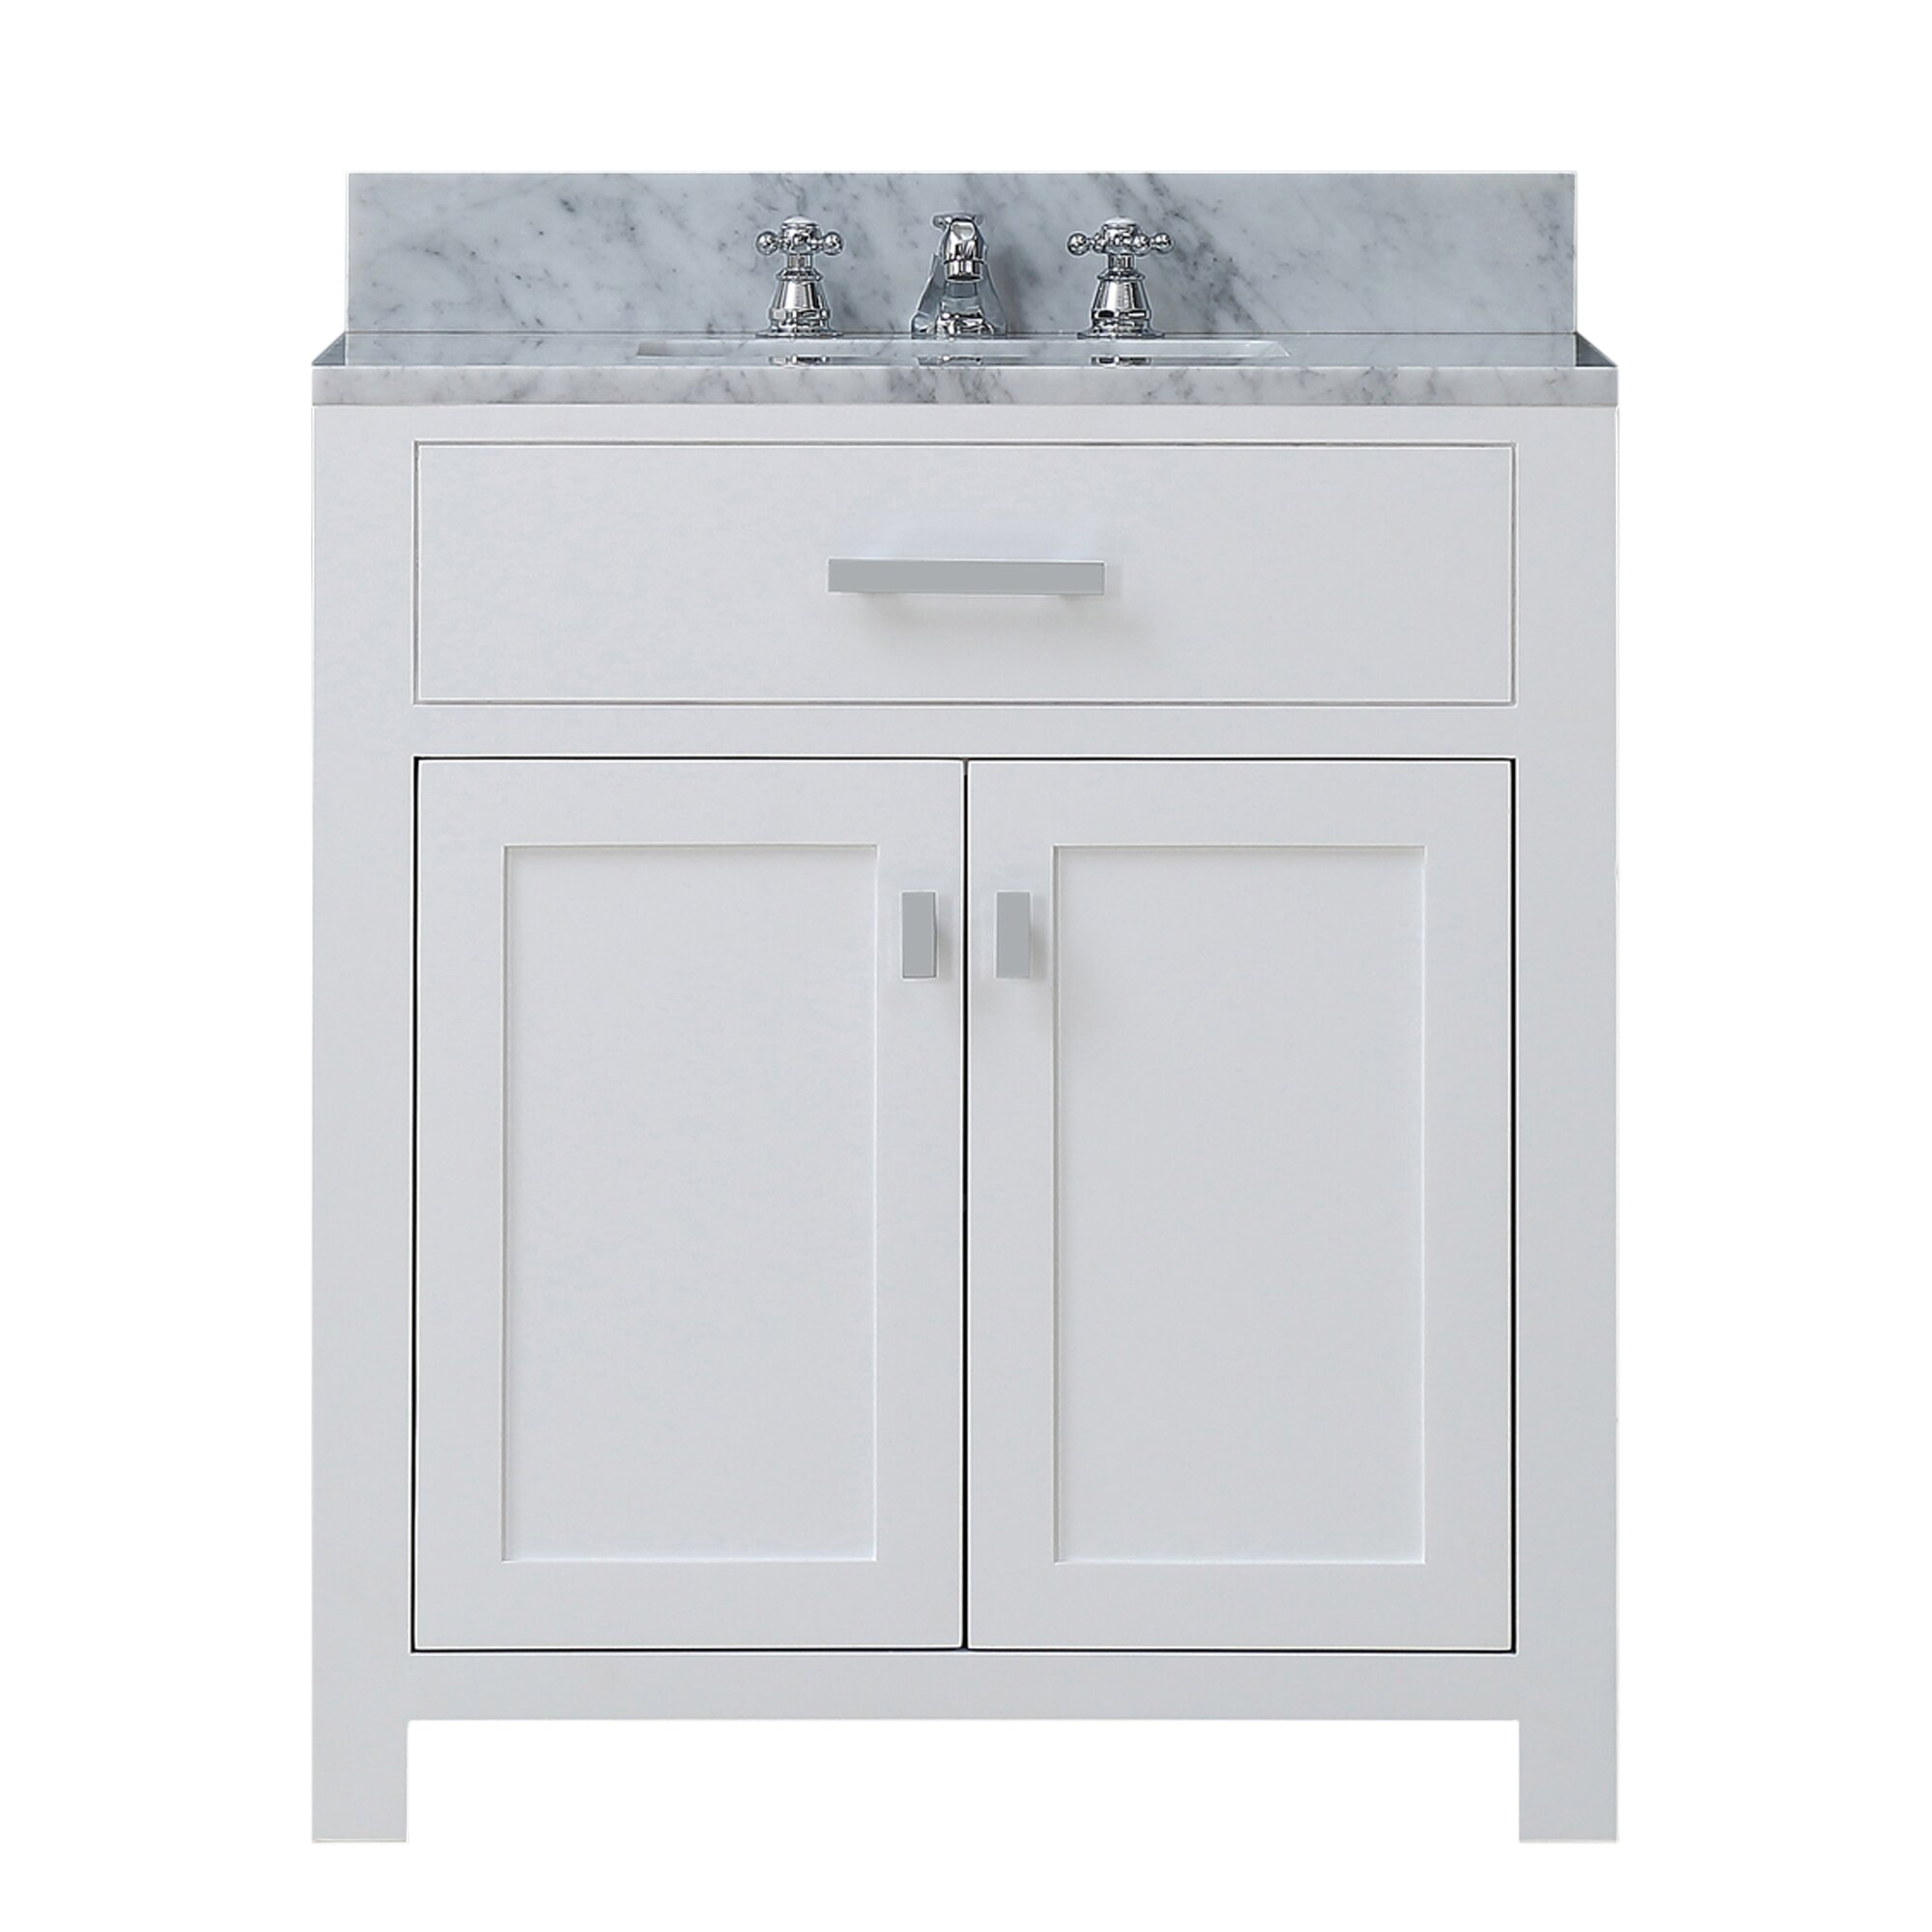 Dcor Design Creighton 30 Single Bathroom Vanity Set Reviews Wayfair